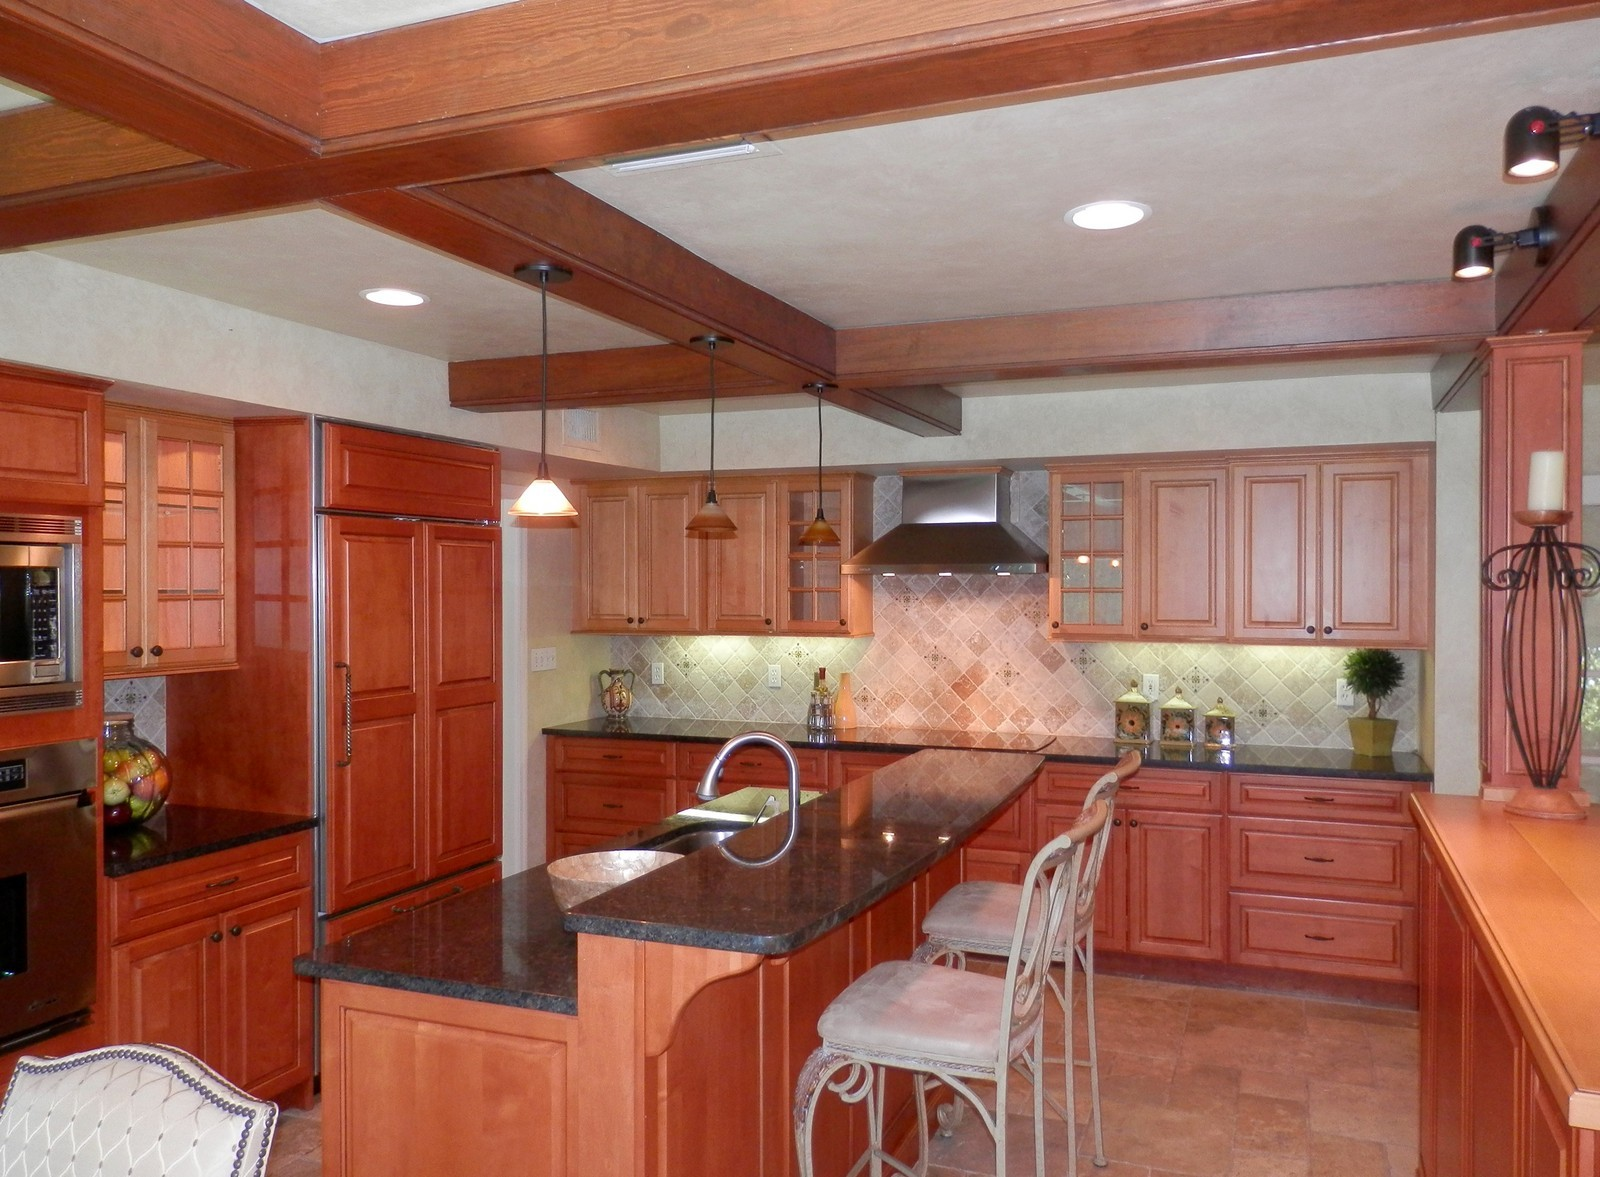 Real Estate Photography - 4920 Lyford Cay Road, Tampa, FL, 33629 - Kitchen